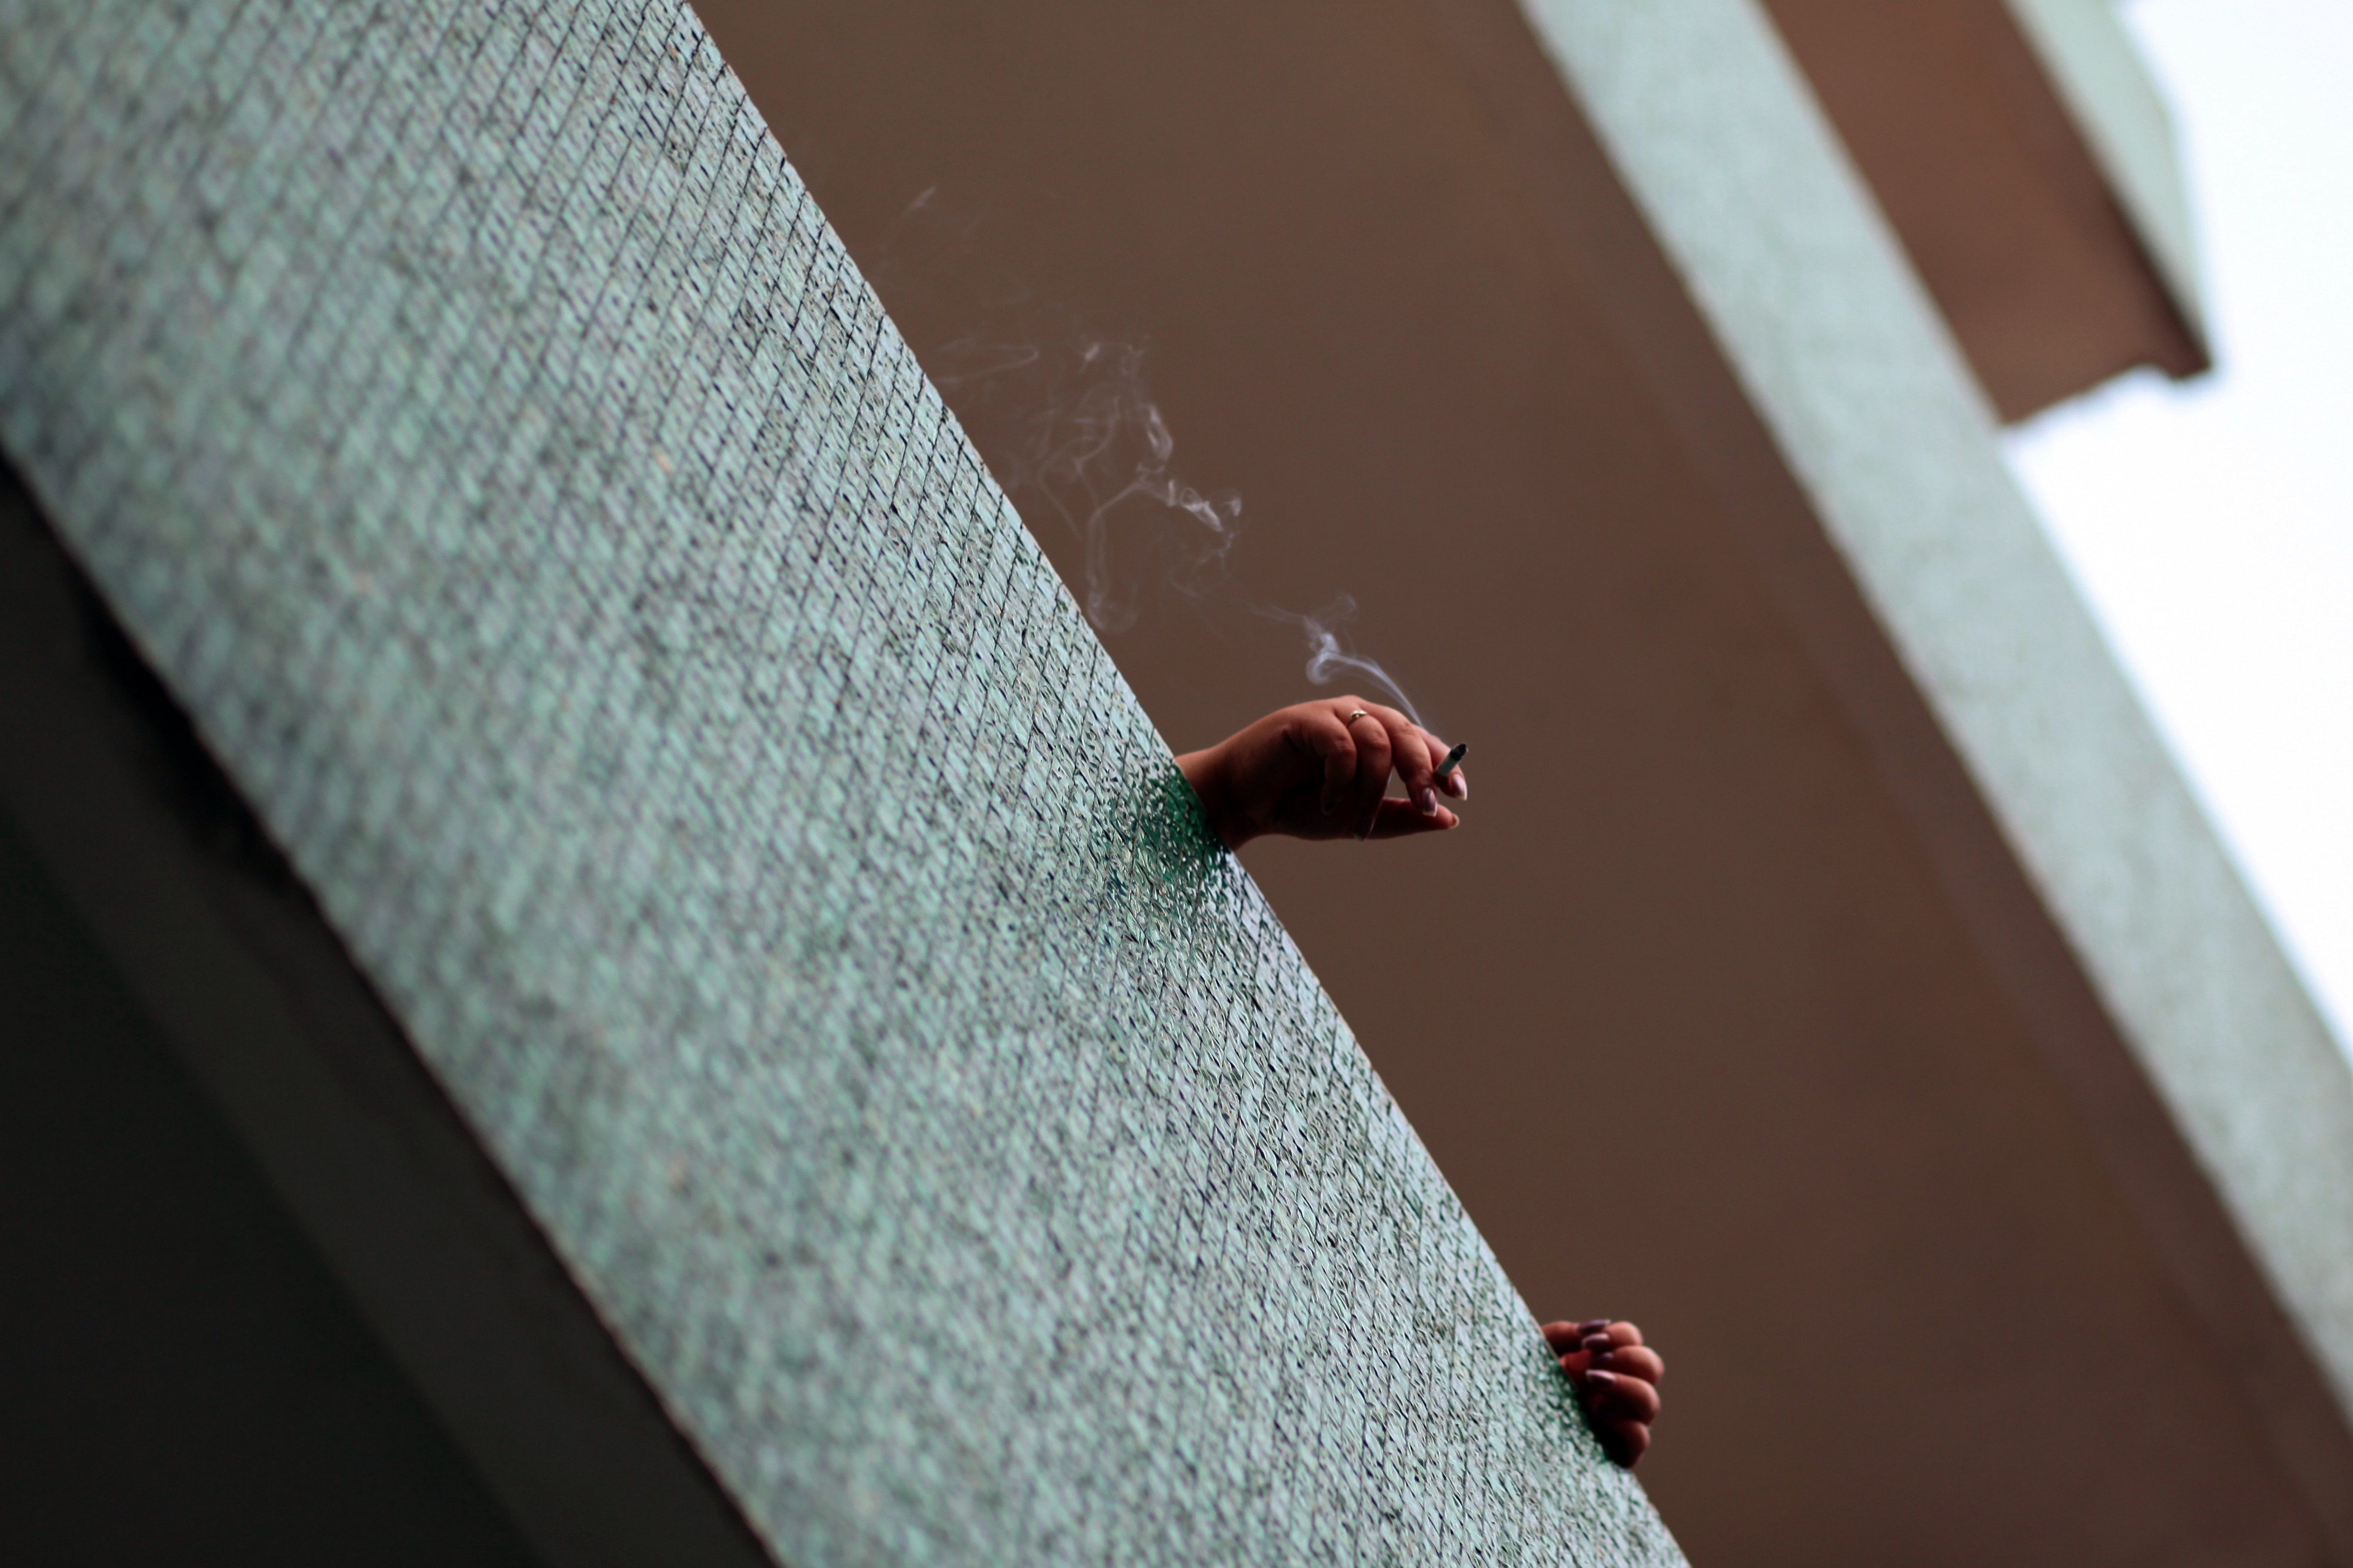 Photo of hands, balcony and cigarette.